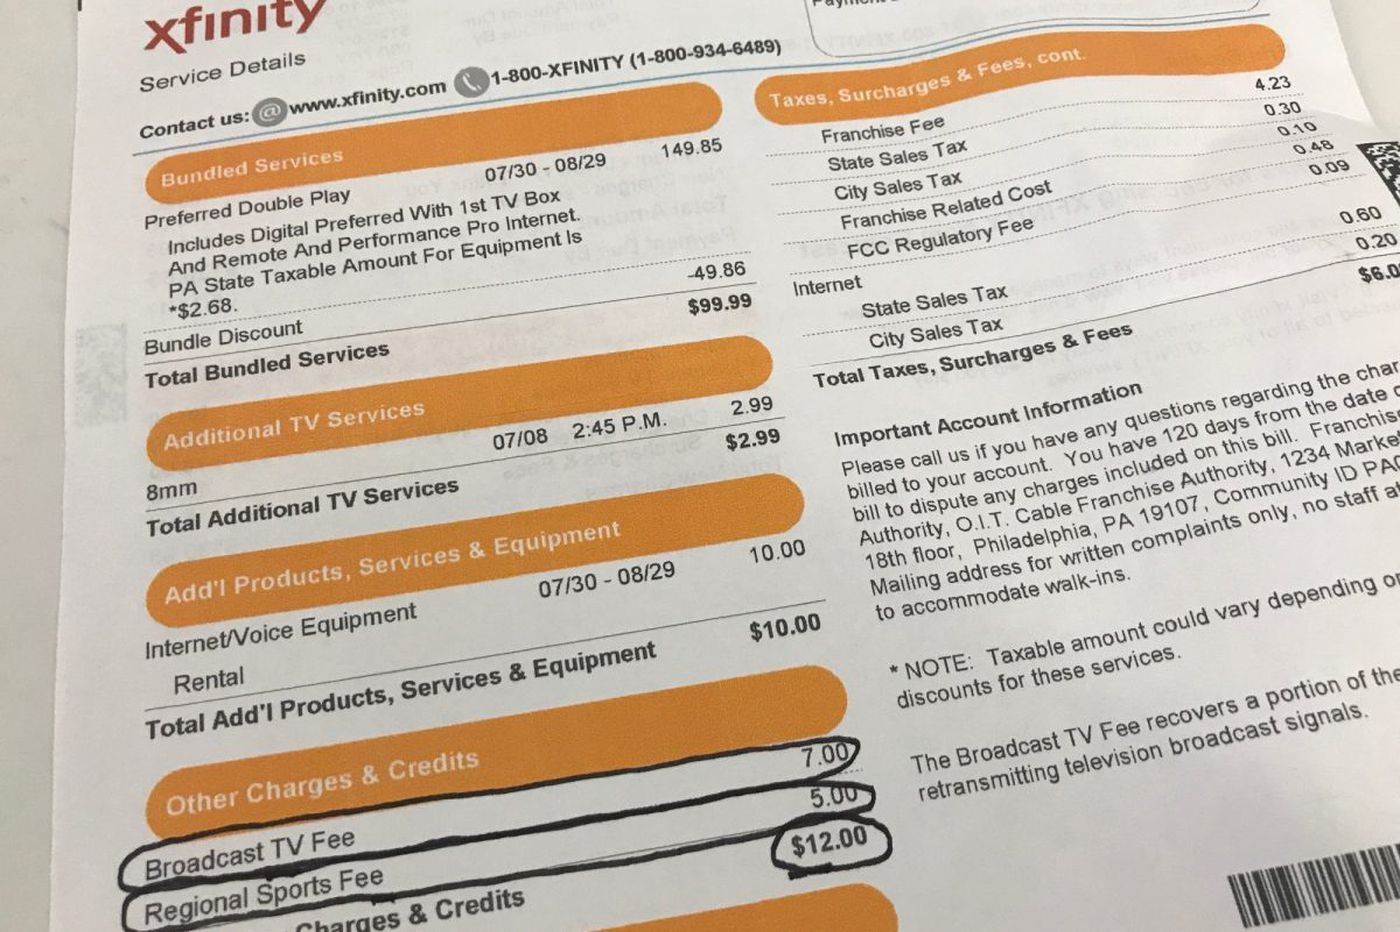 Consumer suit against Comcast over $1B in TV, sports fees can advance, judge says